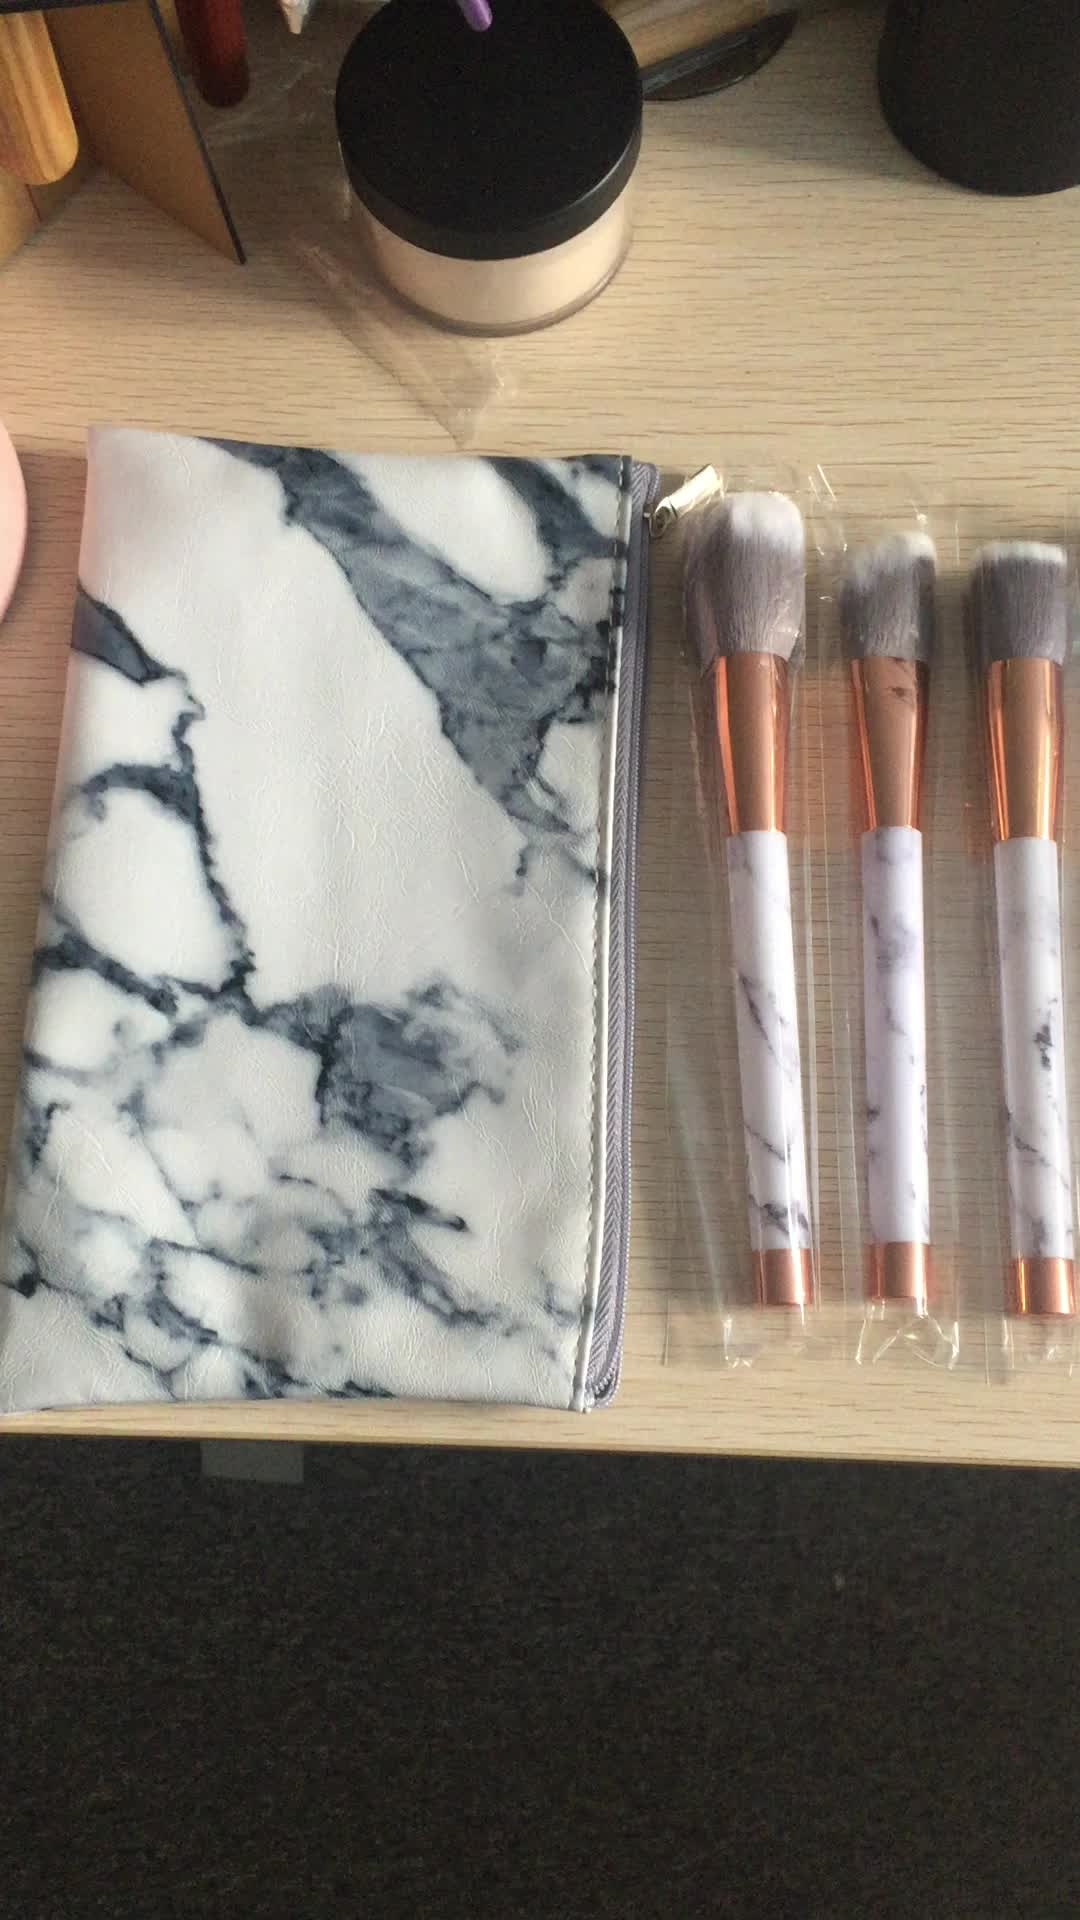 New Hottest makeup tool kits 11pcs Marble handle grey synthetic hair makeup brush set with fan brush